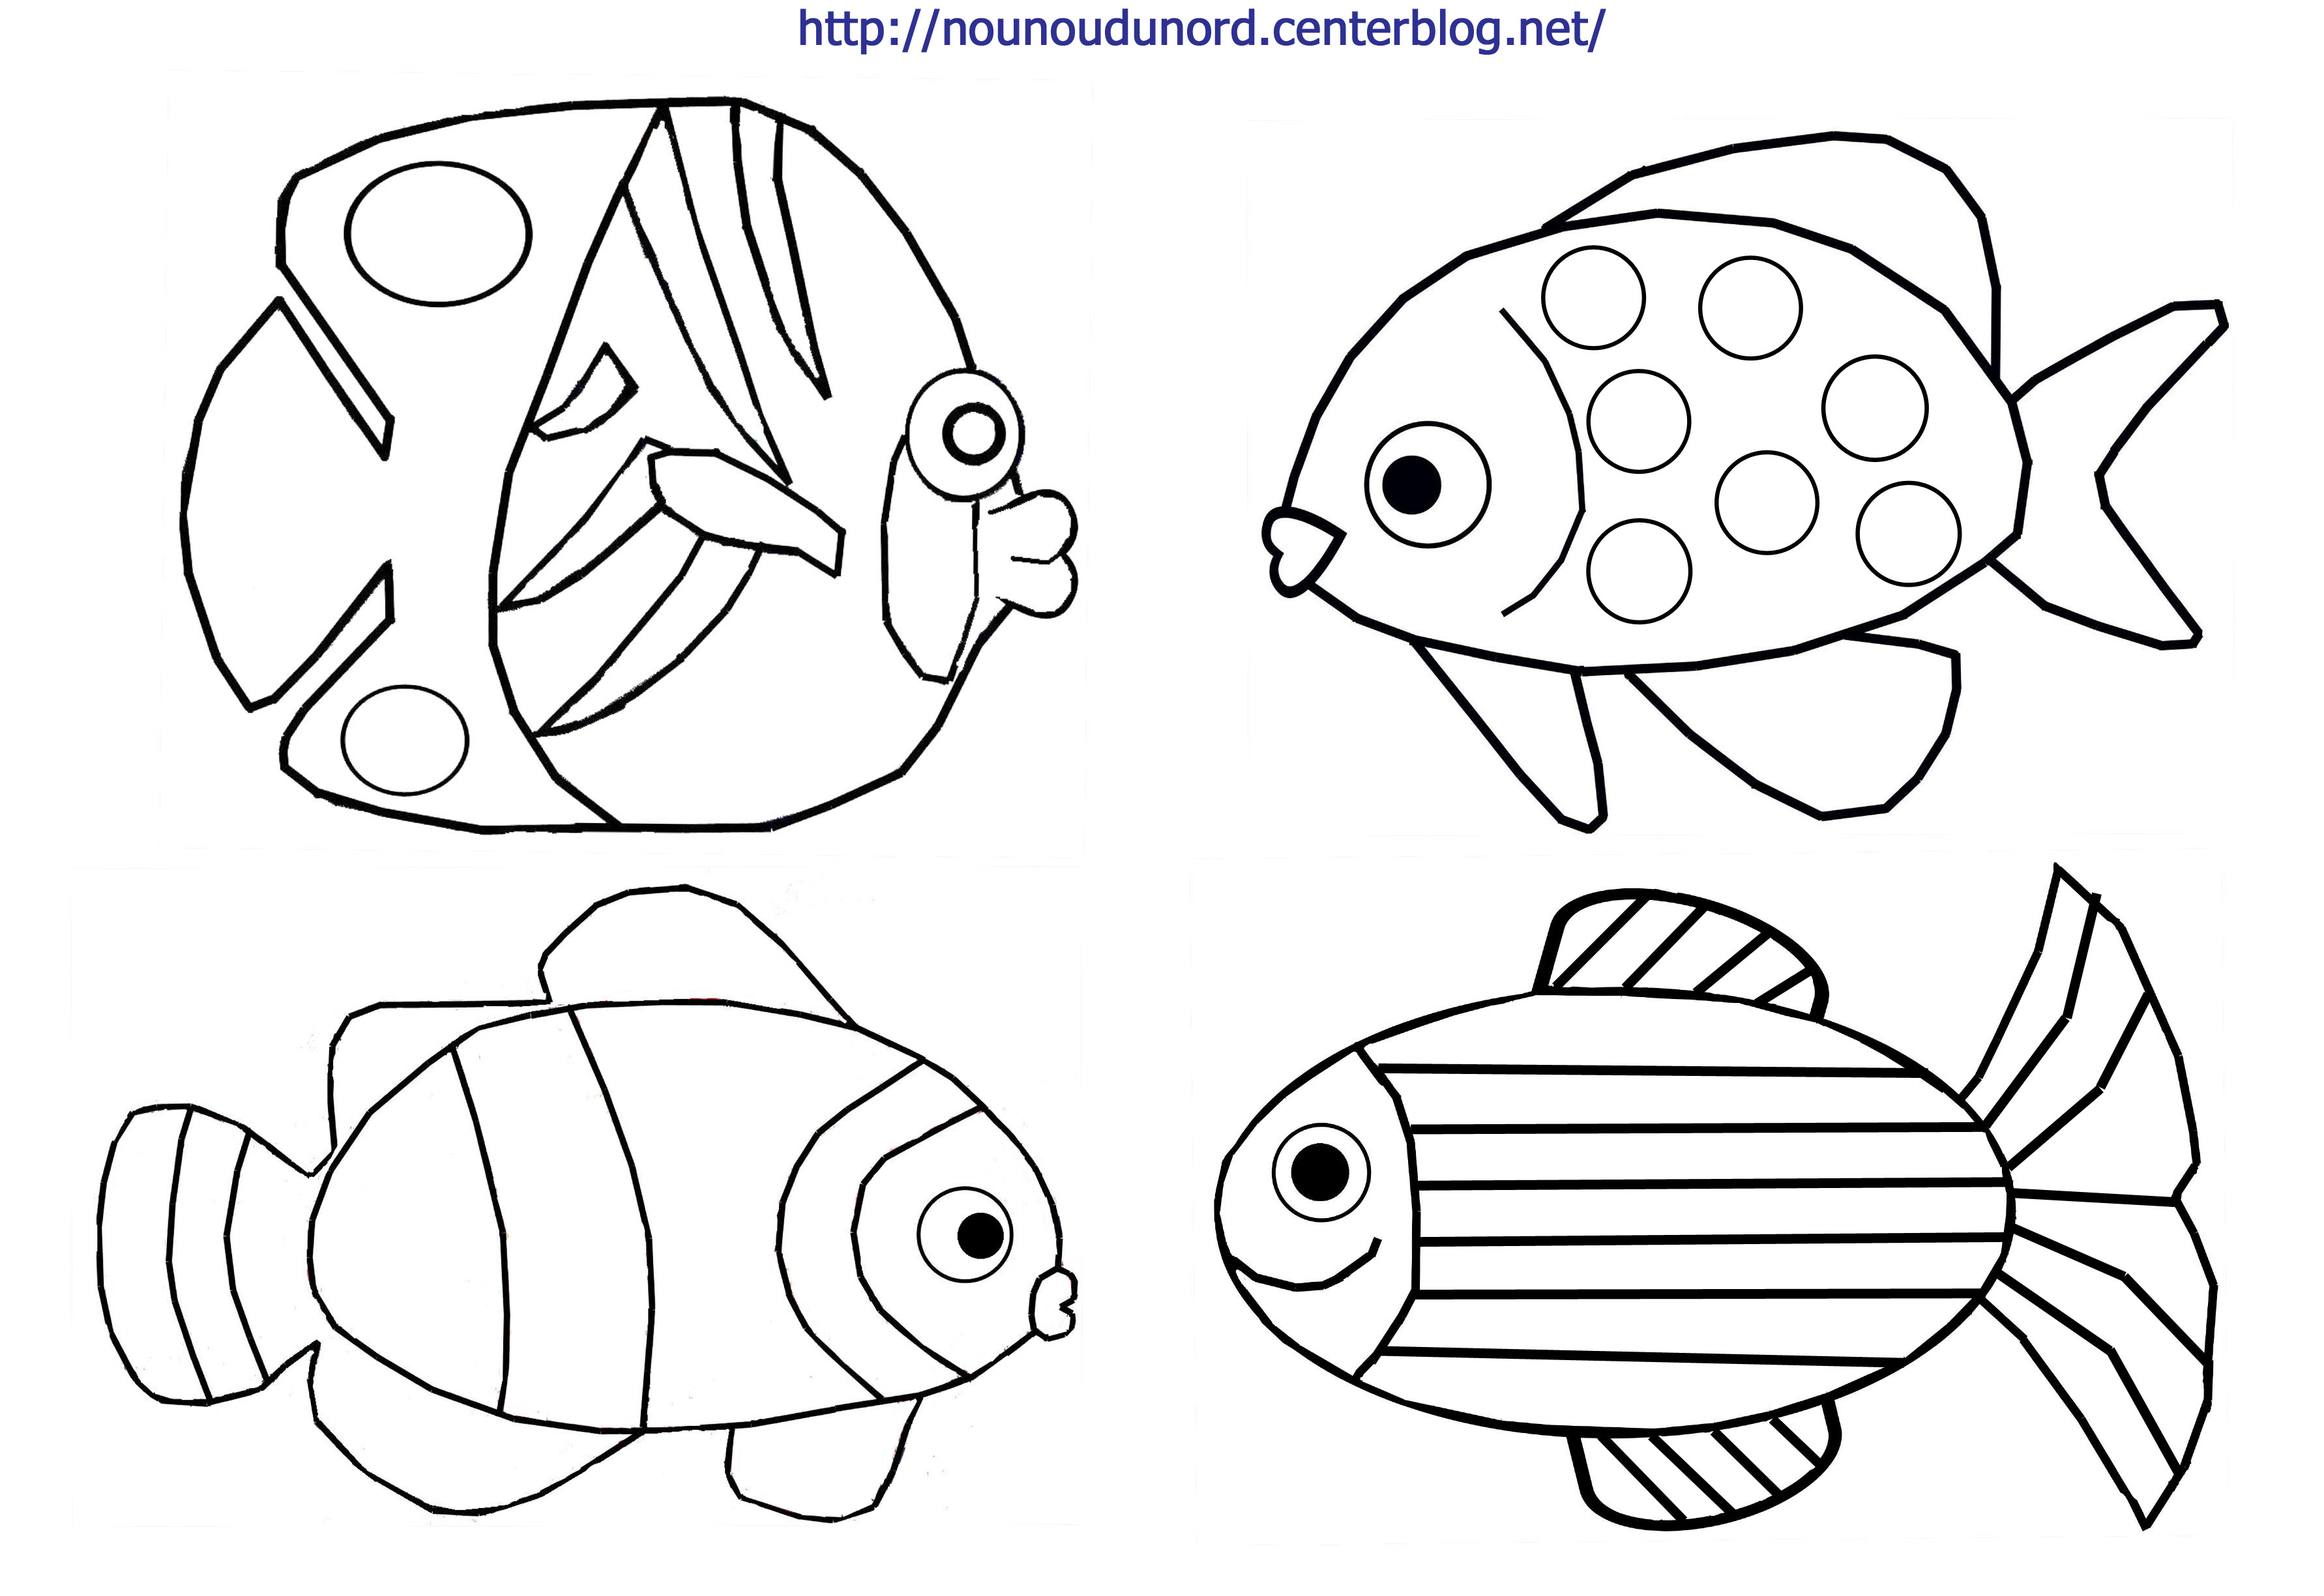 coloriage poisson d'avril tfou